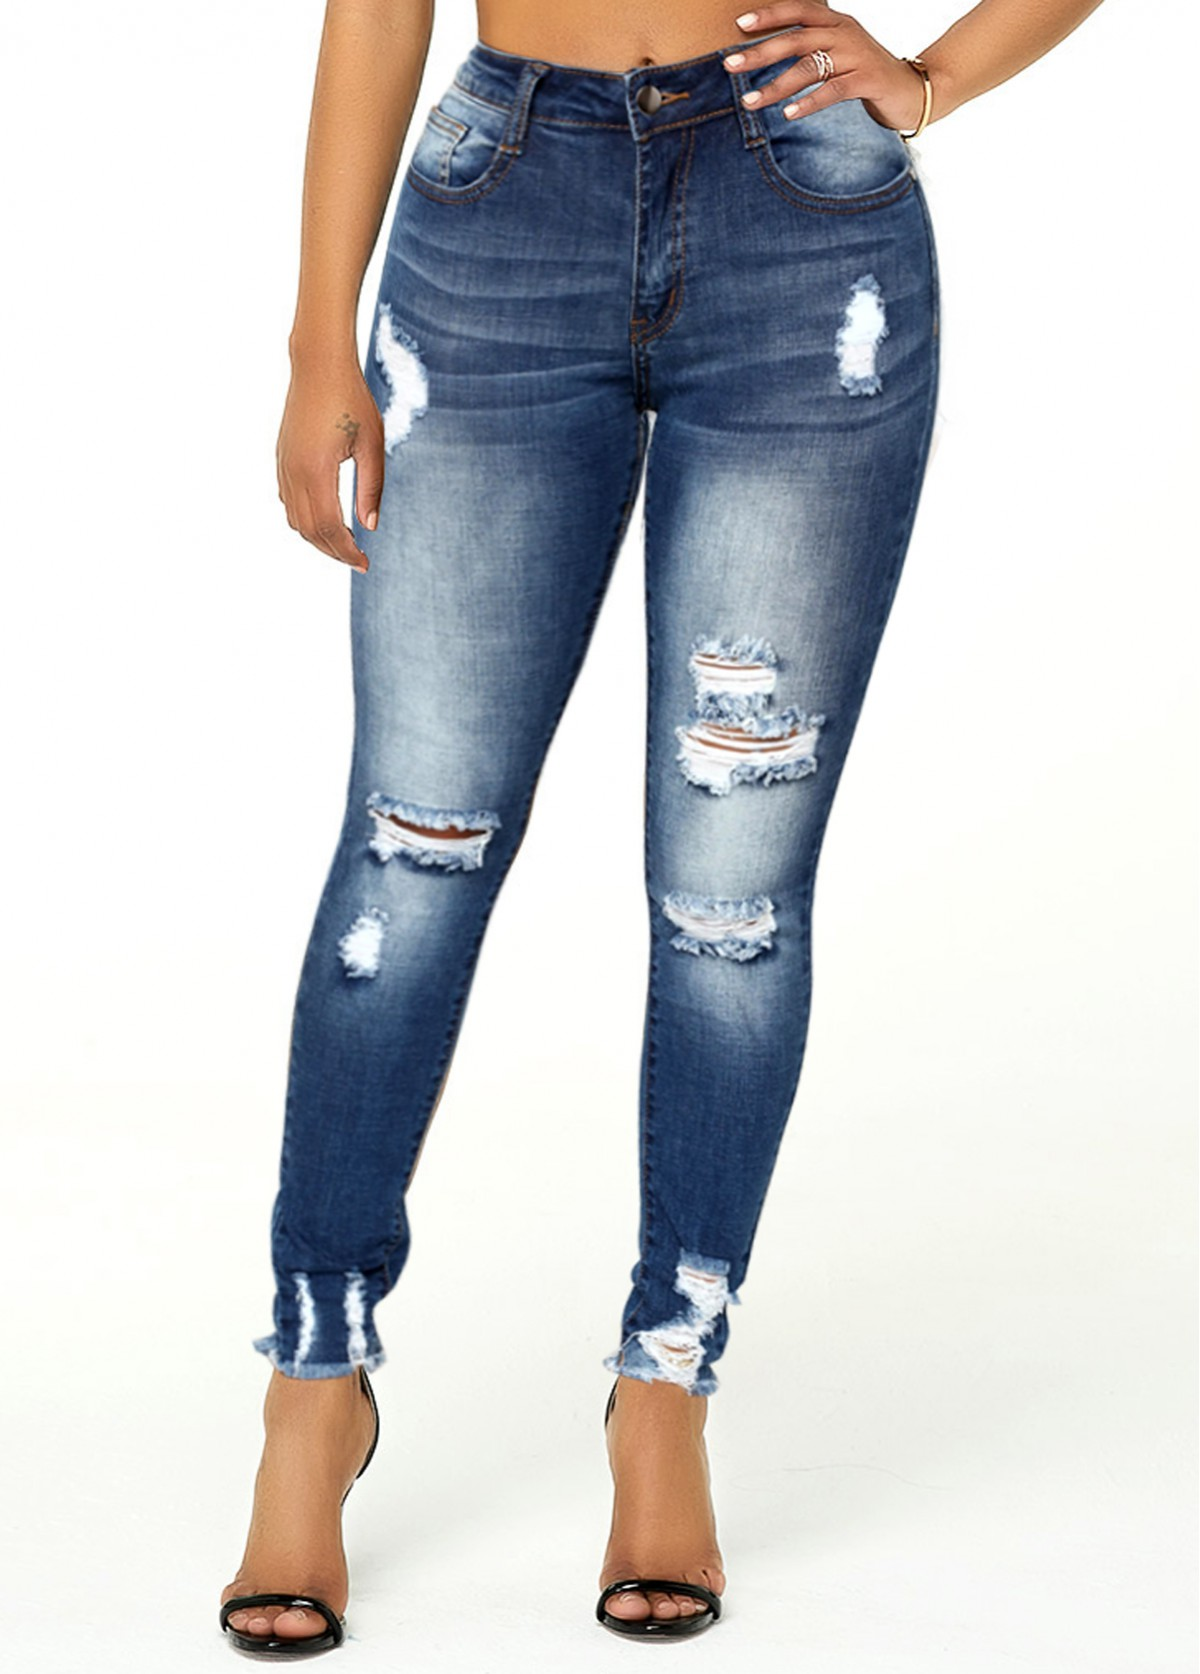 ROTITA Shredded Frayed Hem Acid Washed Jeans